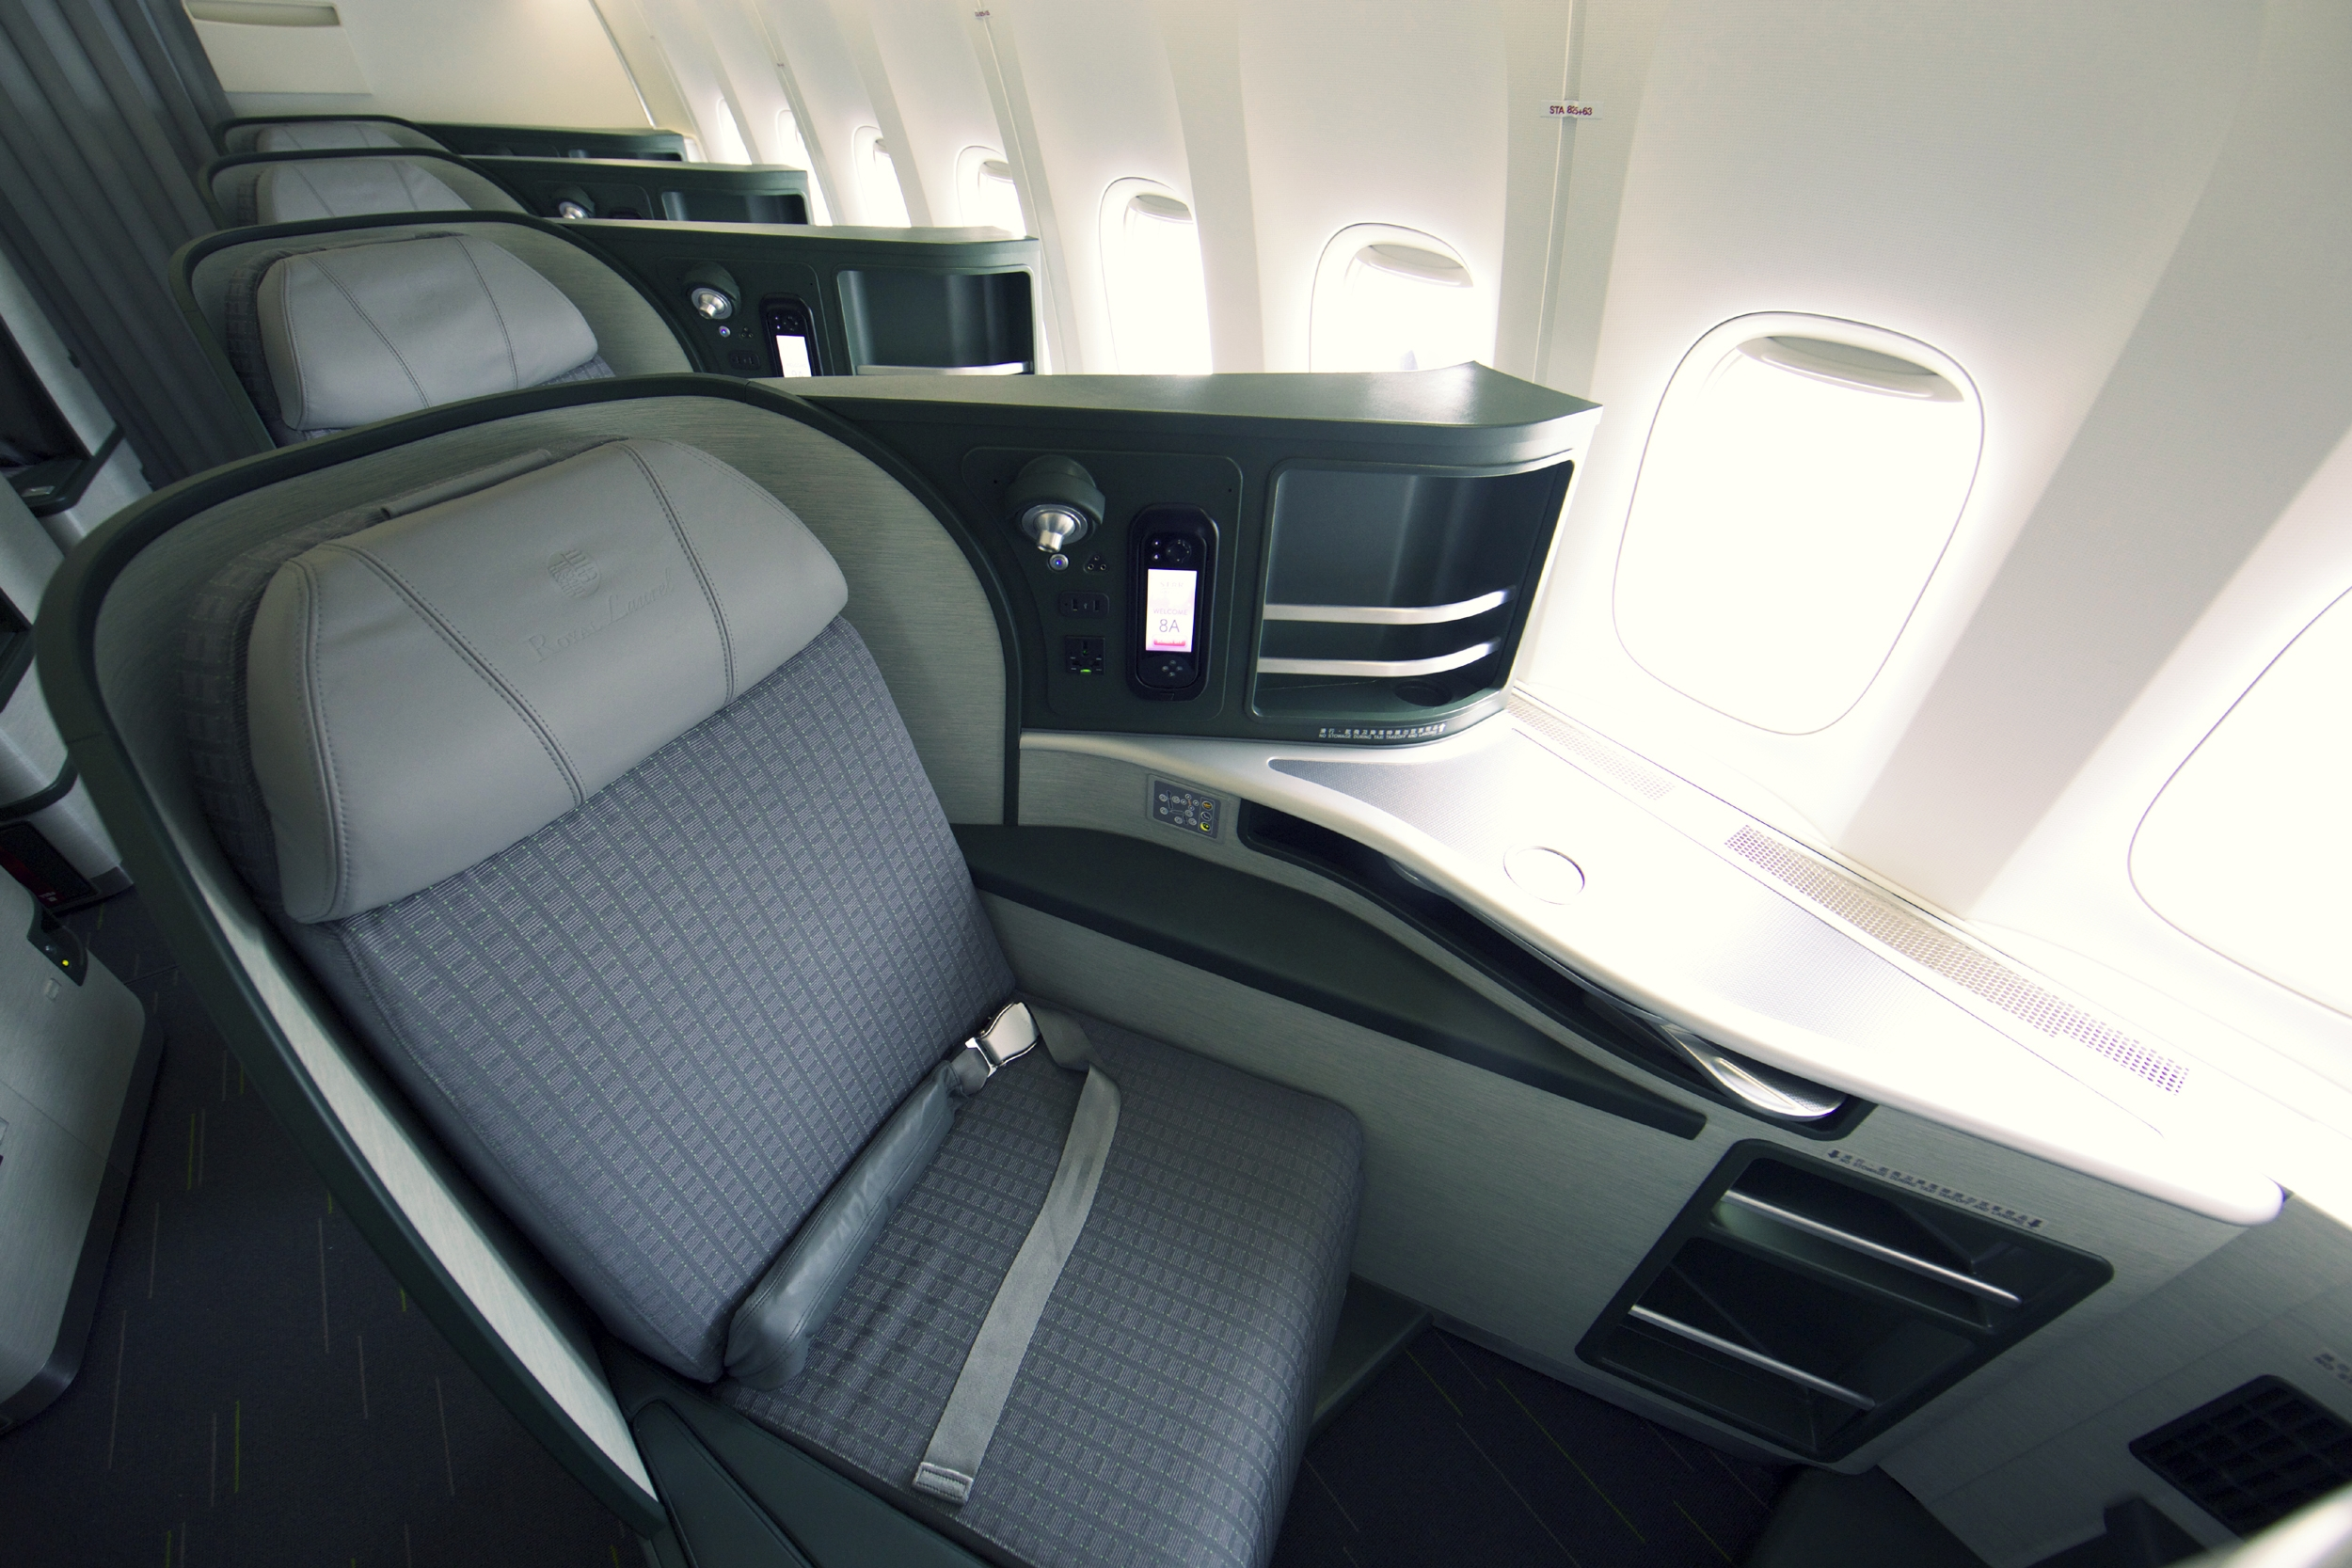 EVA-Air-Business-Class-Seats.jpg